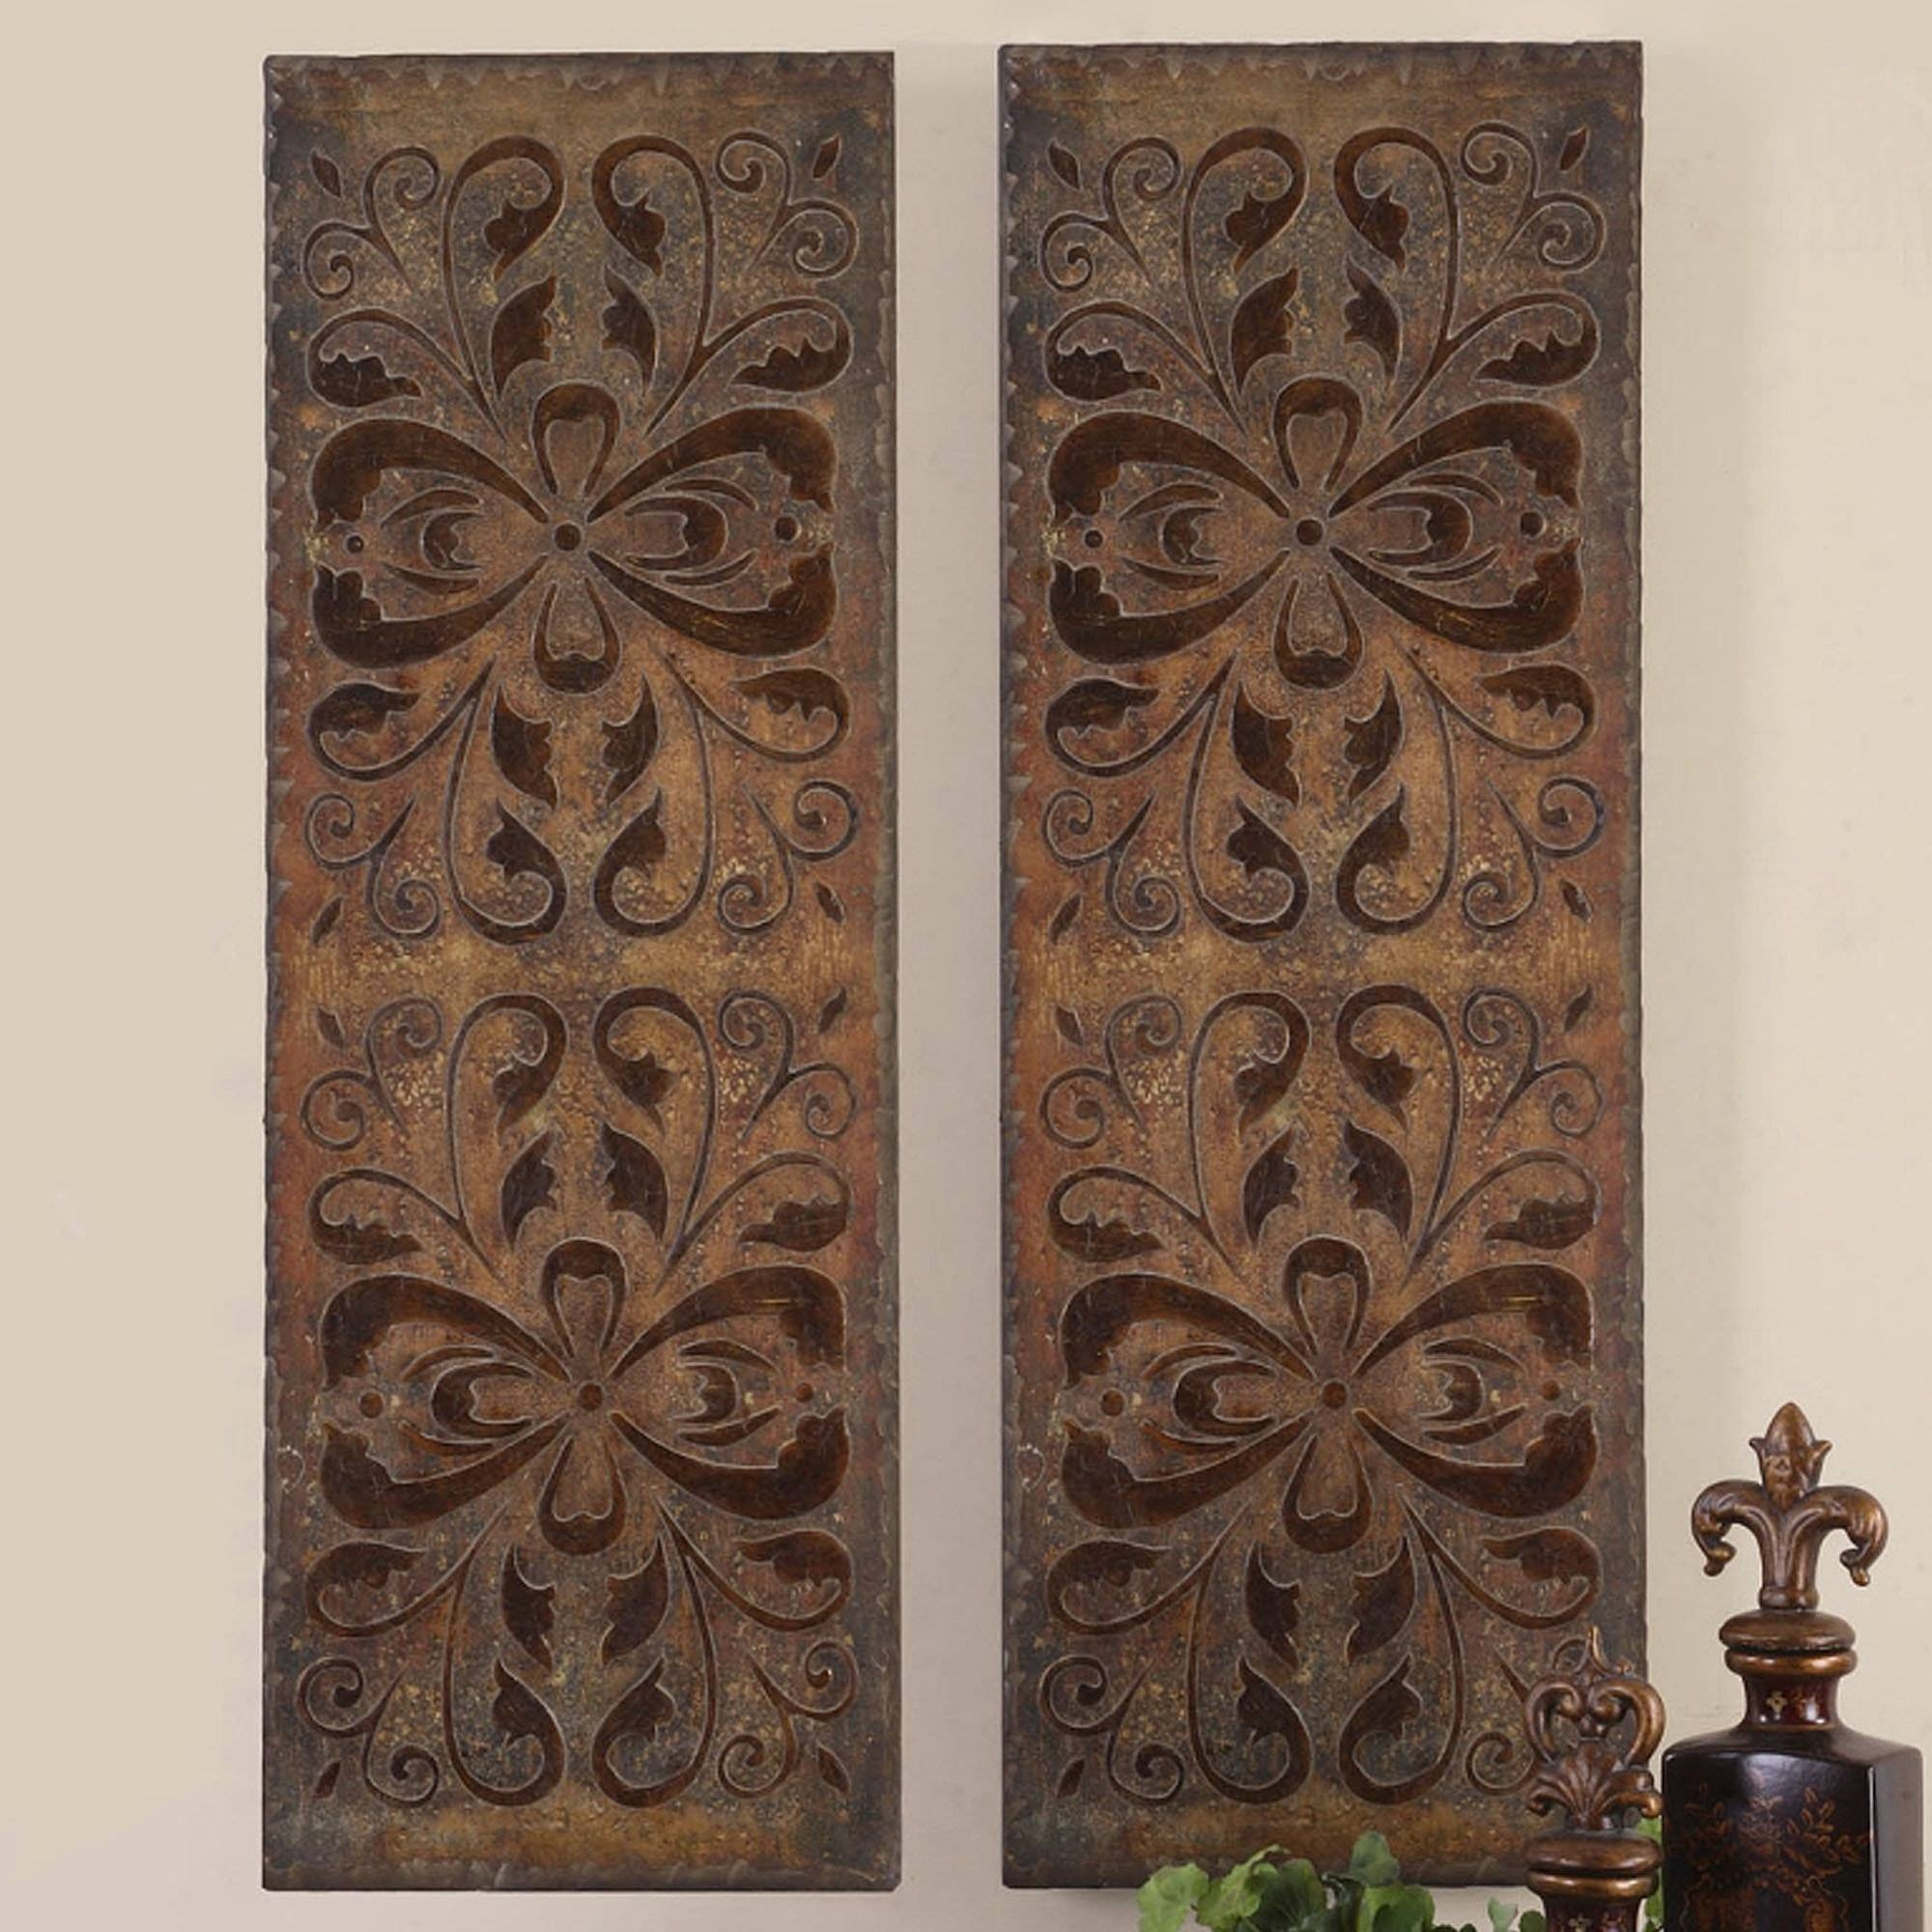 Home Design : Lovely Wood Panel Wall Decor 5 Carved Panels Art Regarding 2018 Wood Carved Wall Art Panels (View 14 of 25)